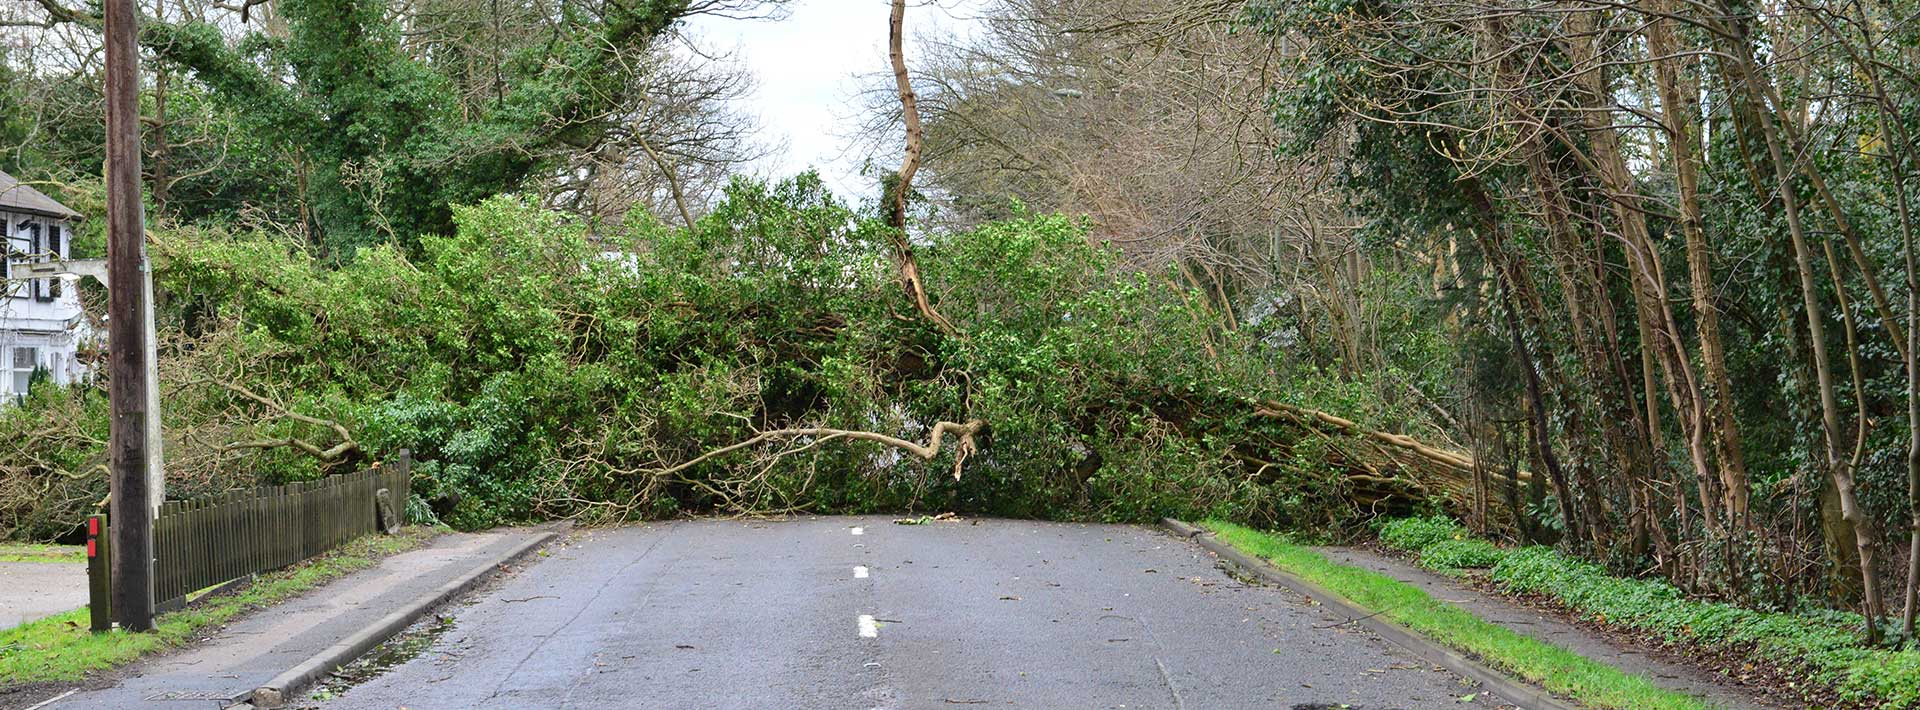 Tree fallen across road - emergency tree cutting services, Austral Trees